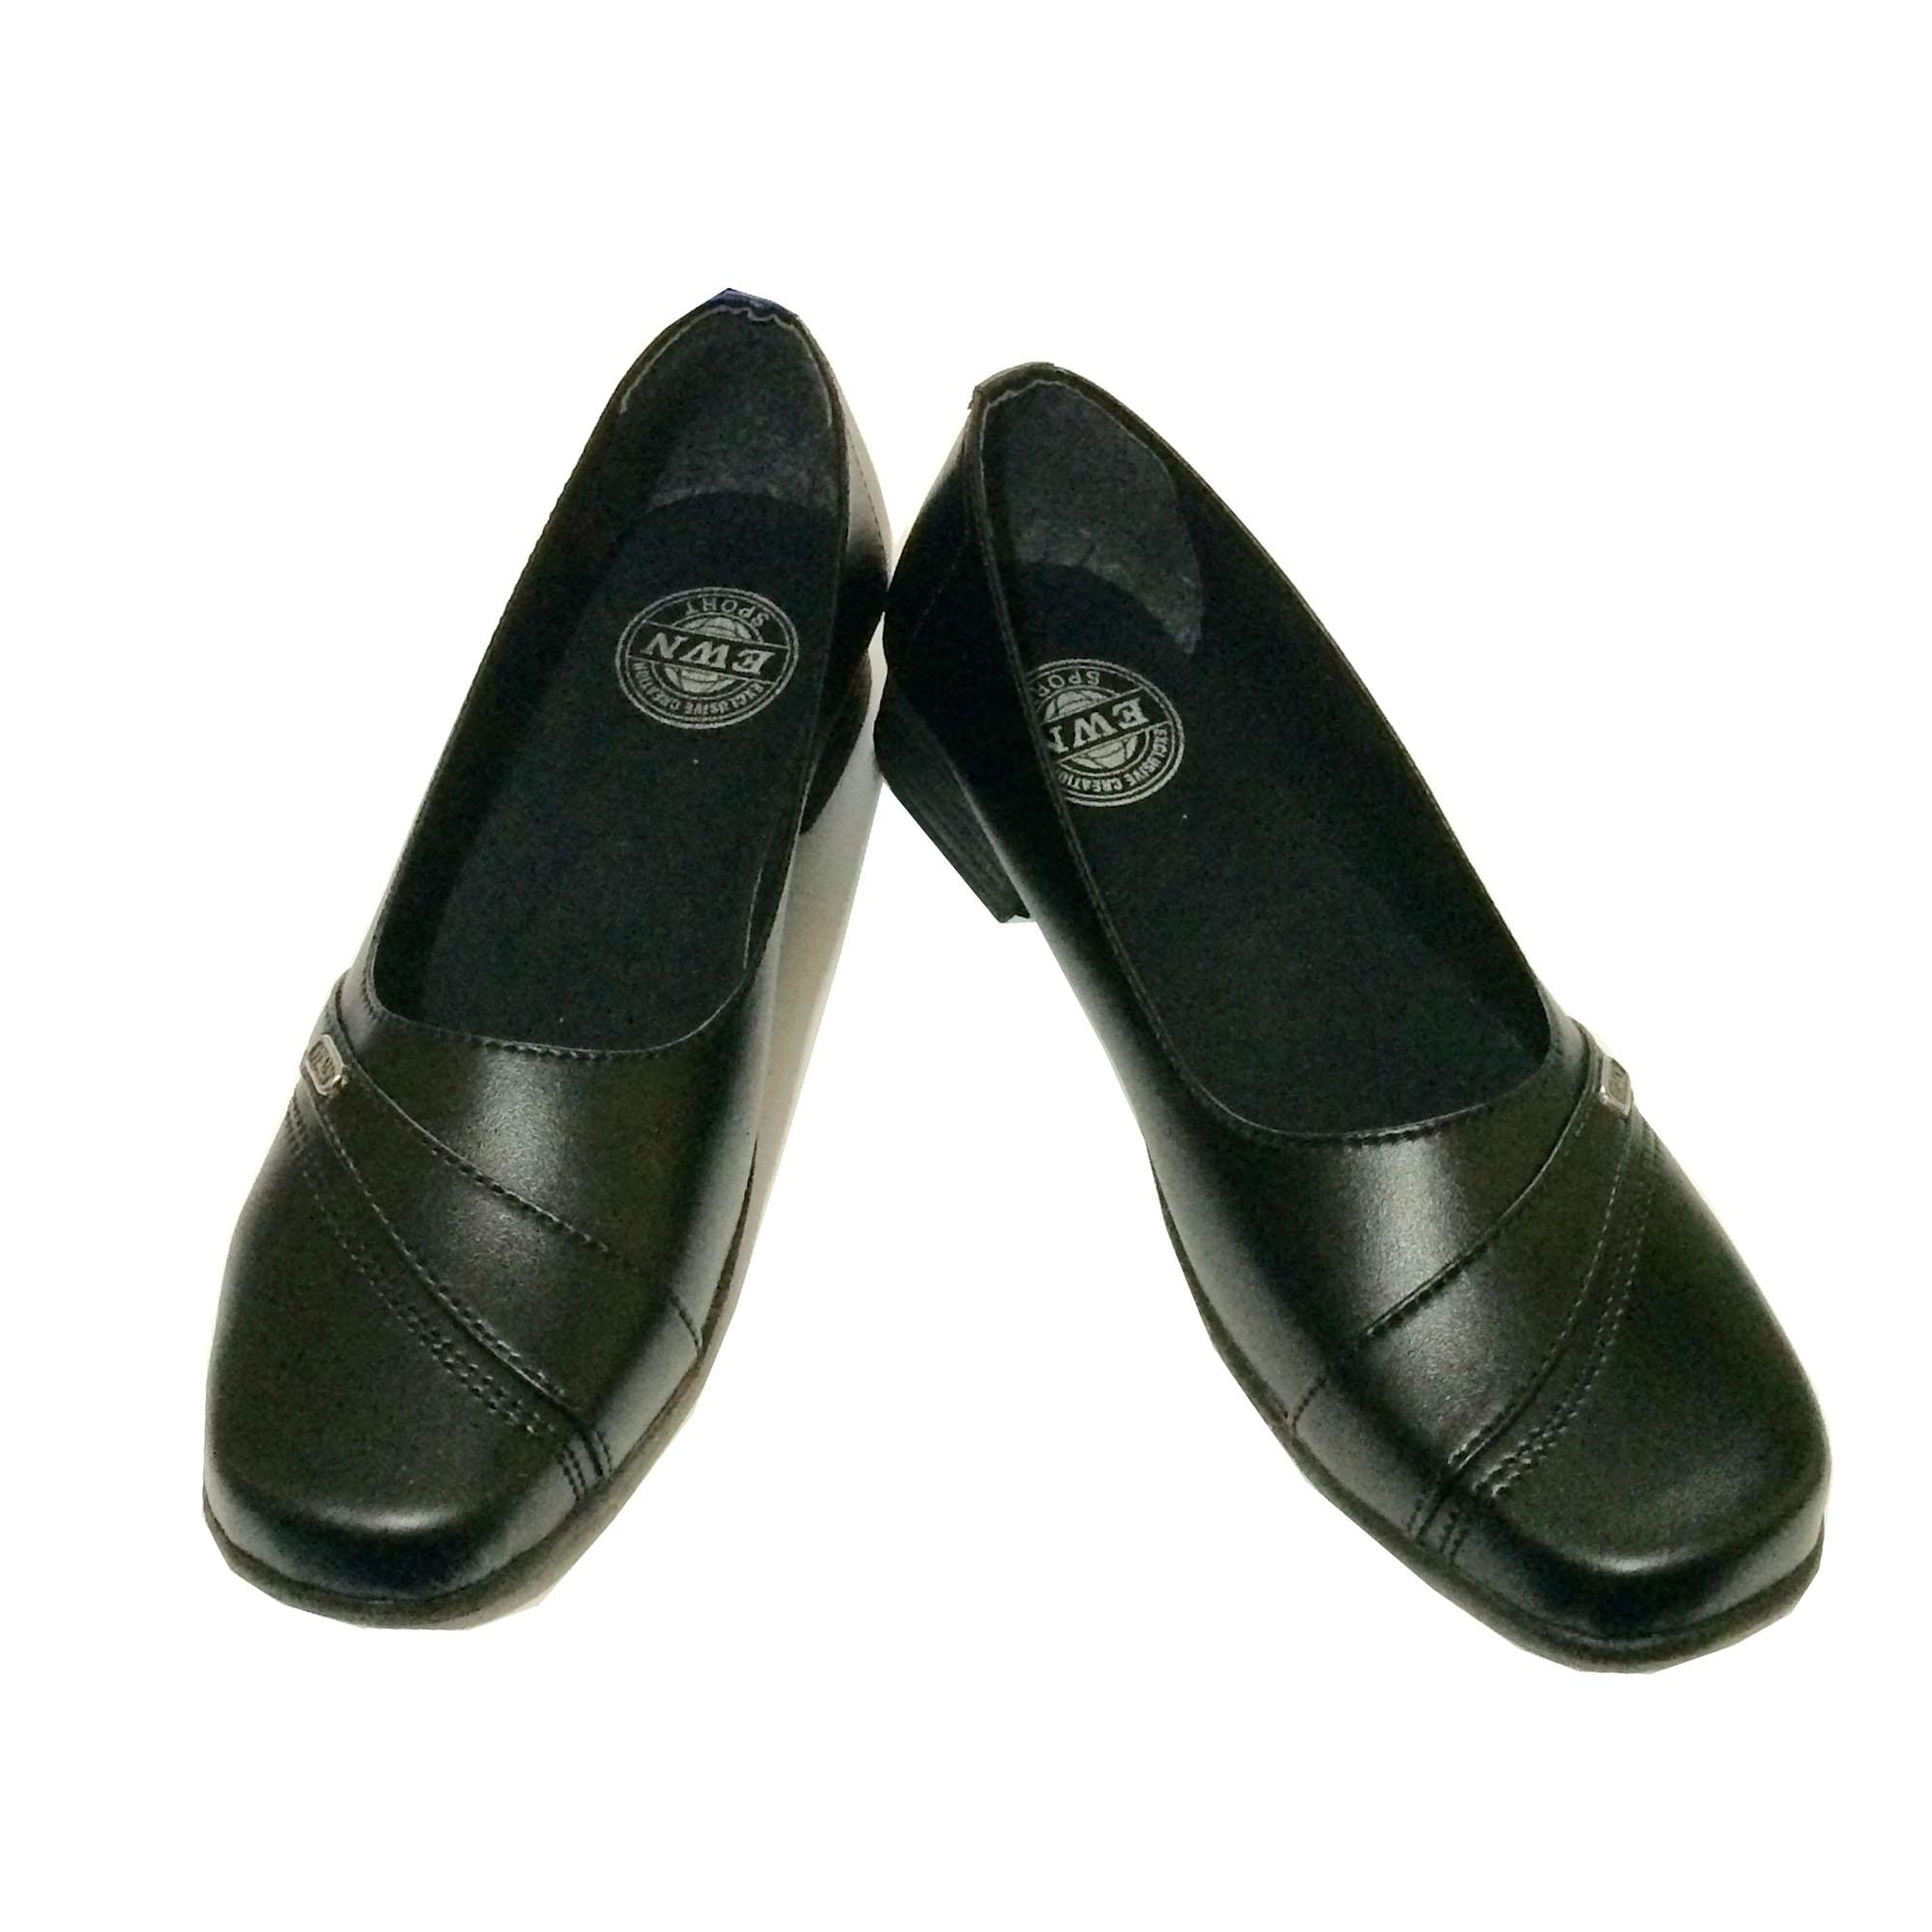 Buy   Sell Cheapest SEPATU WANITA FORMAL Best Quality Product Deals ... 520c8a4285